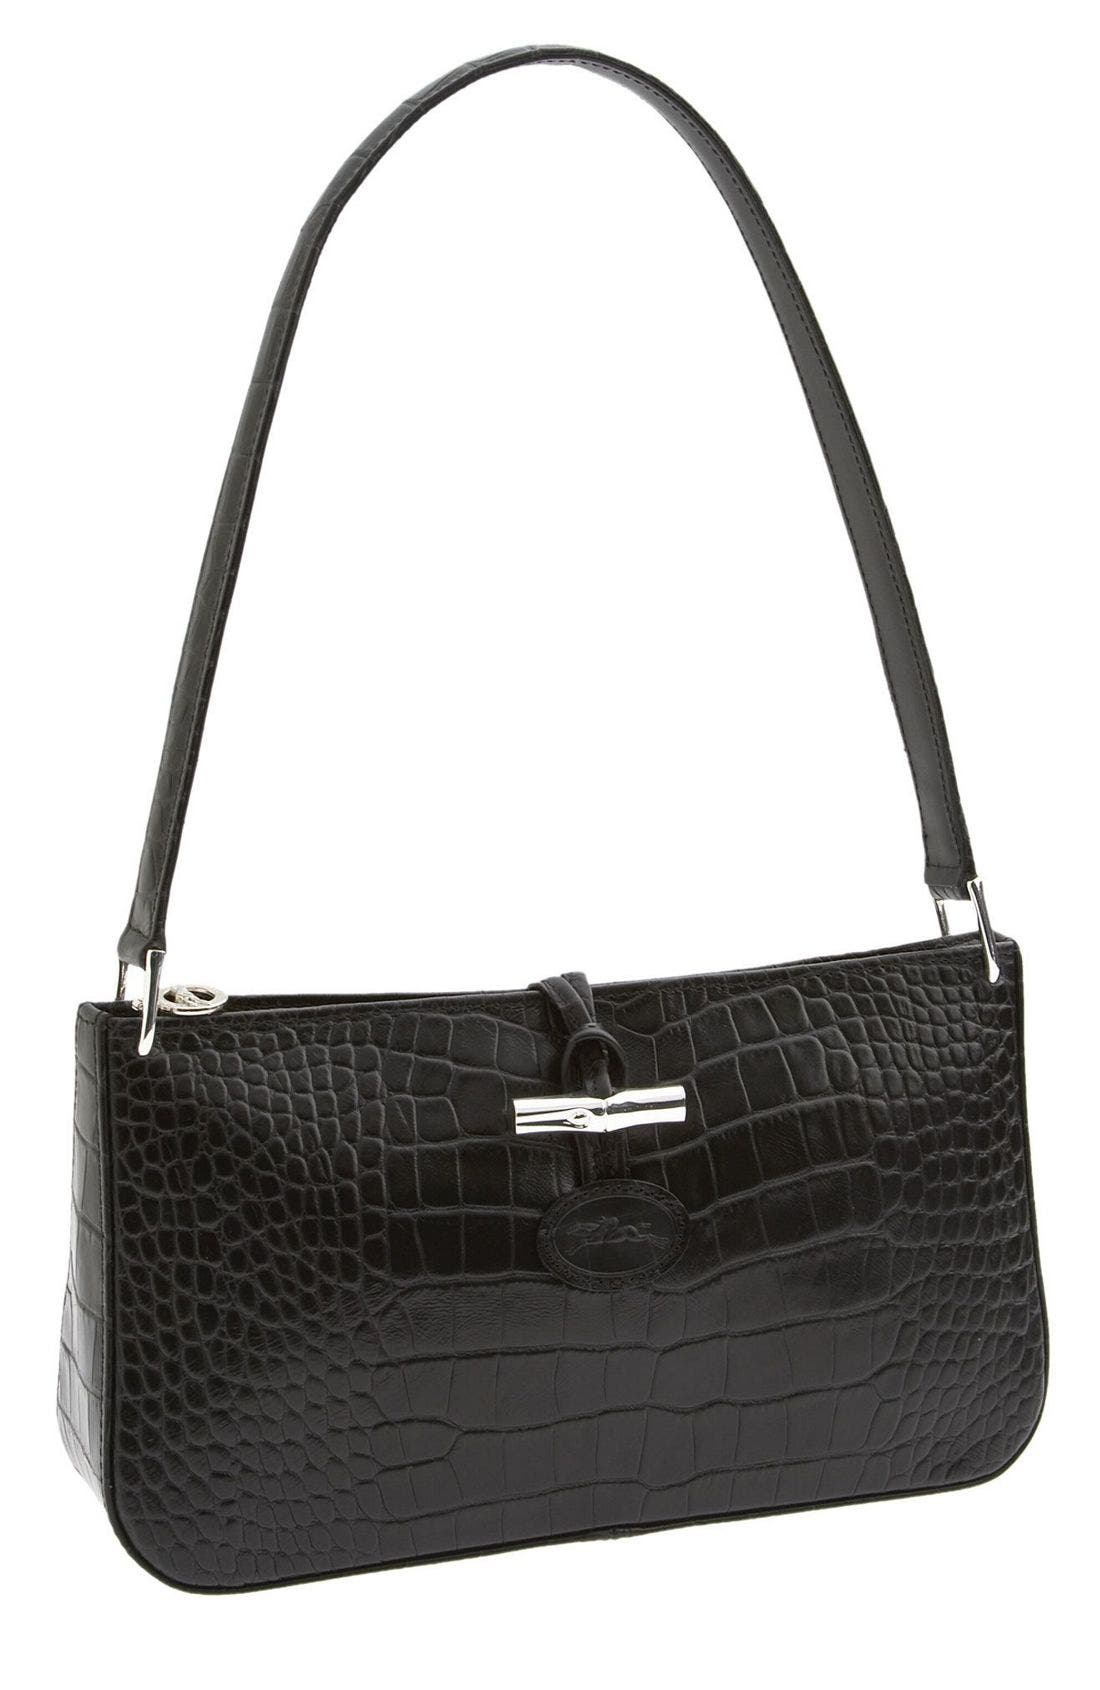 Alternate Image 1 Selected - Longchamp 'Roseau Croco - Small' Shoulder Bag